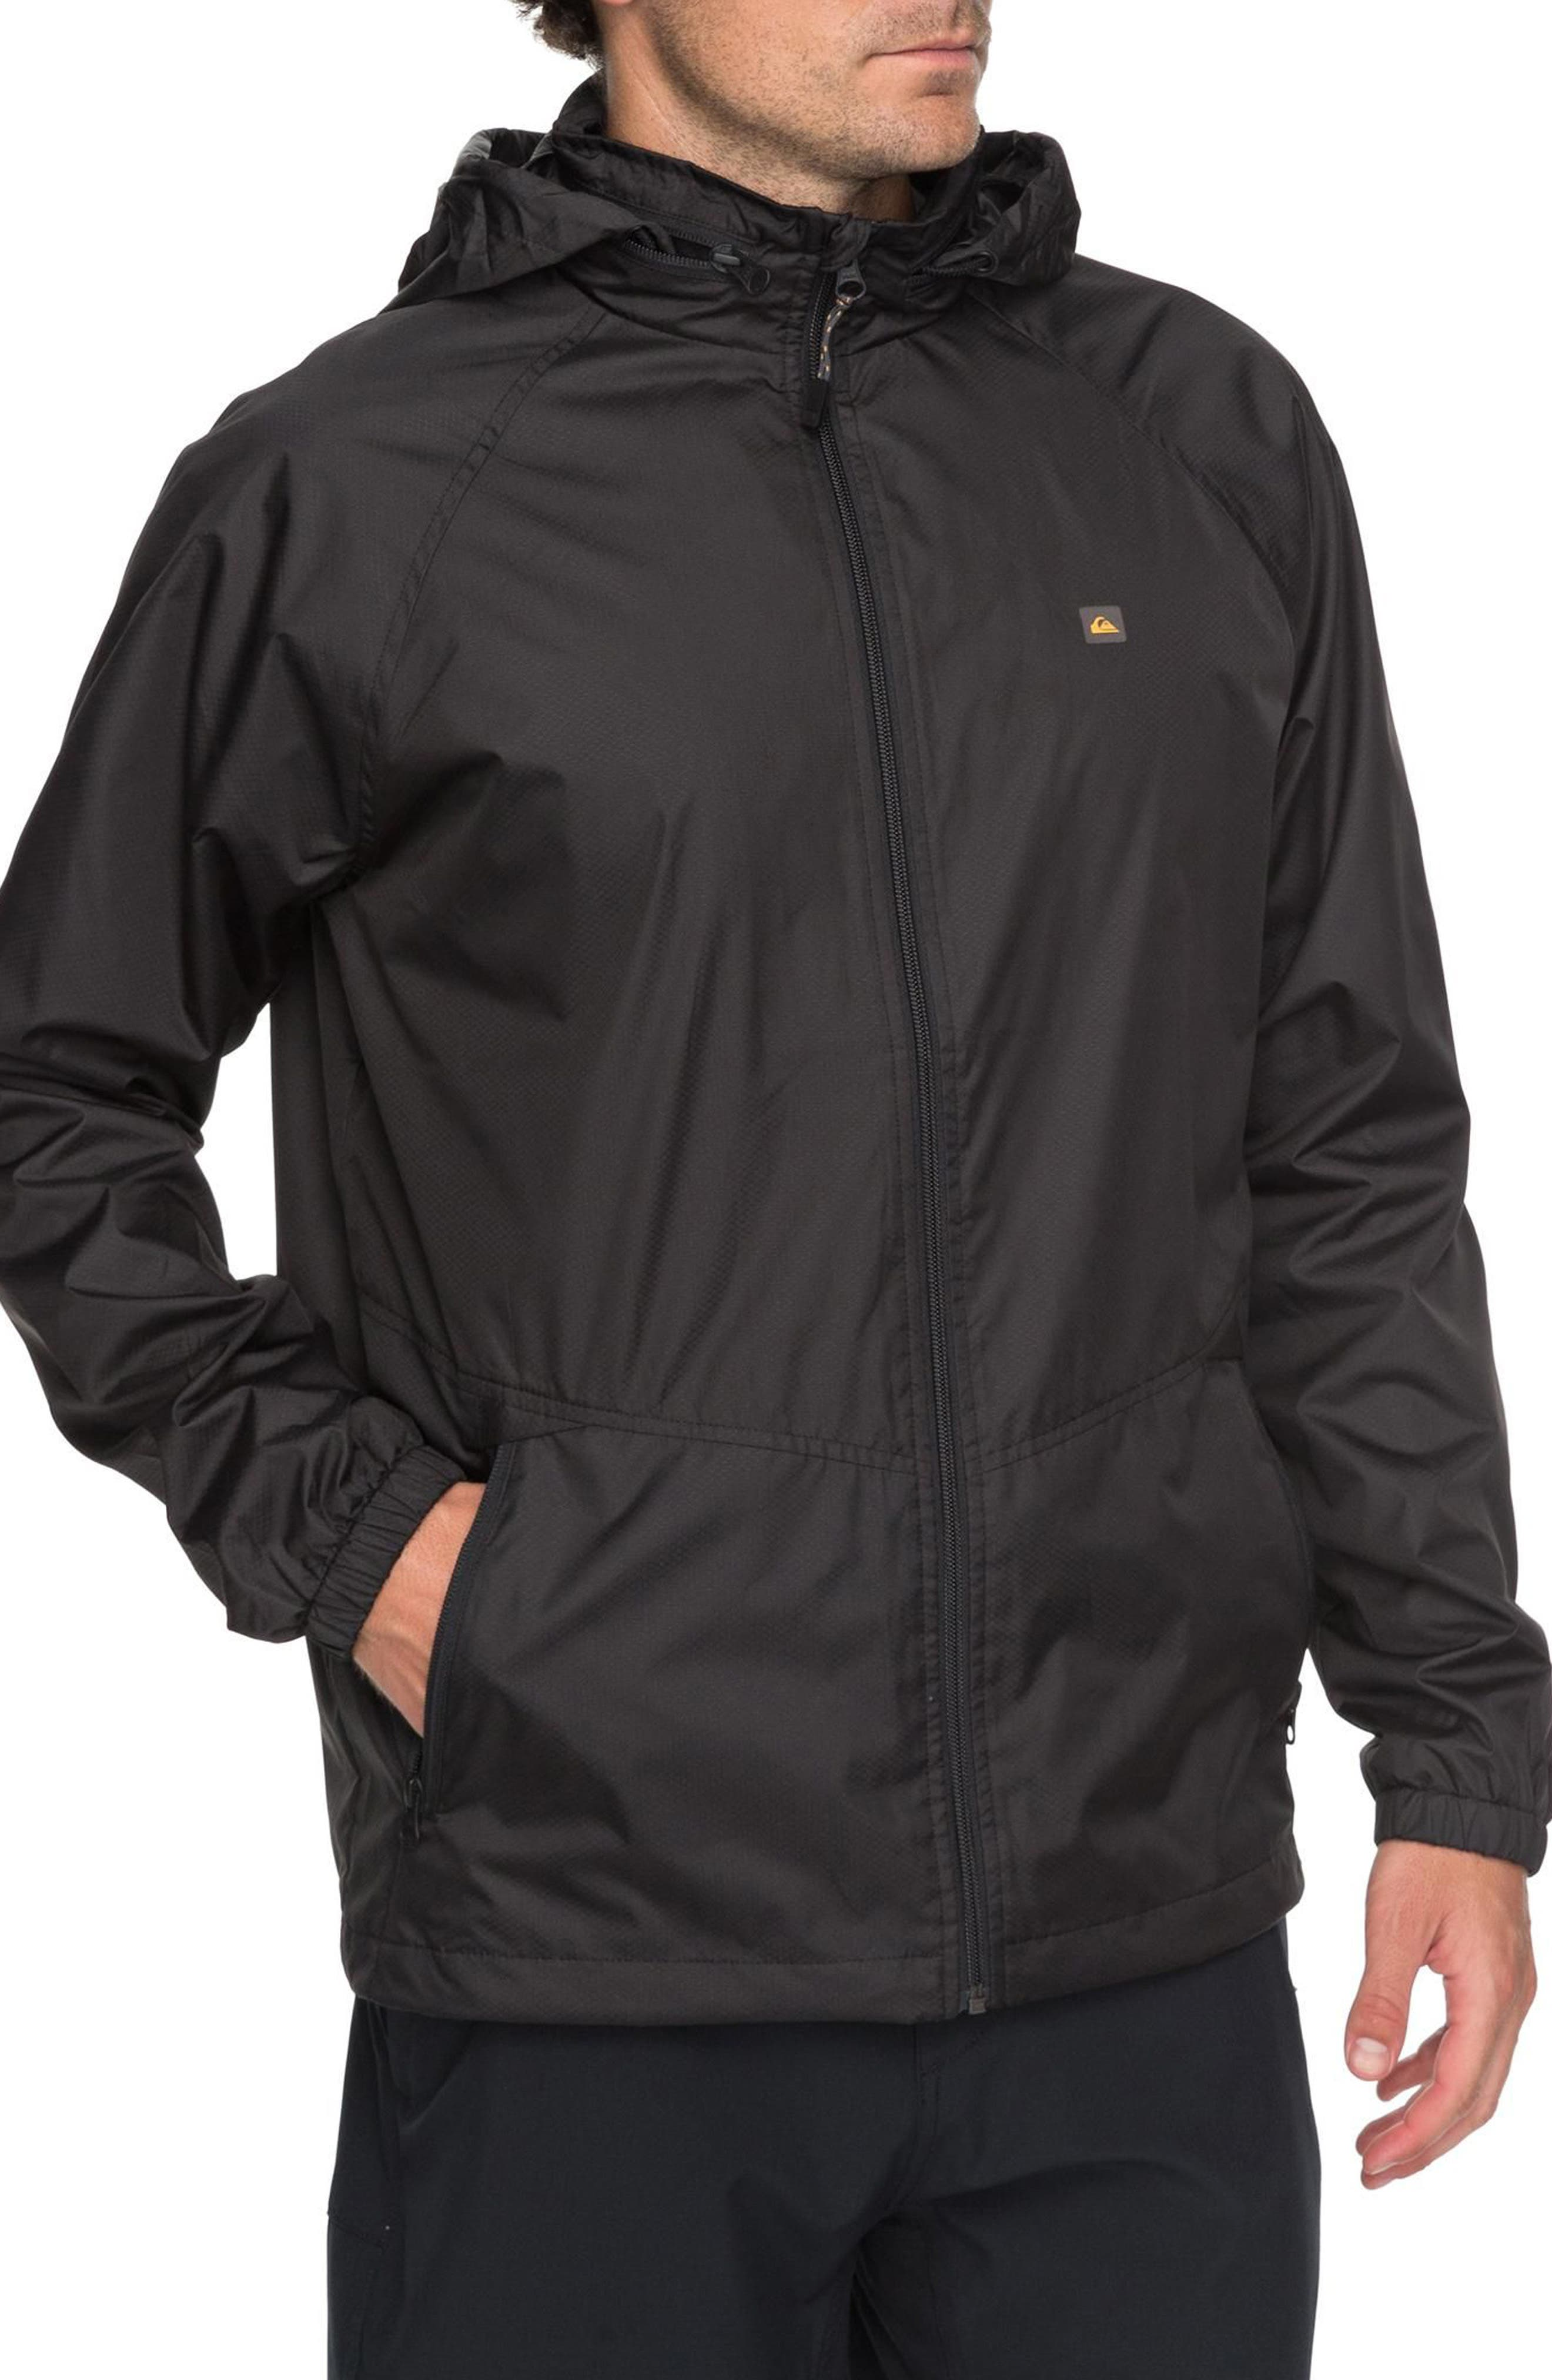 Shell Shock Water Repellent Windbreaker,                             Alternate thumbnail 3, color,                             Black